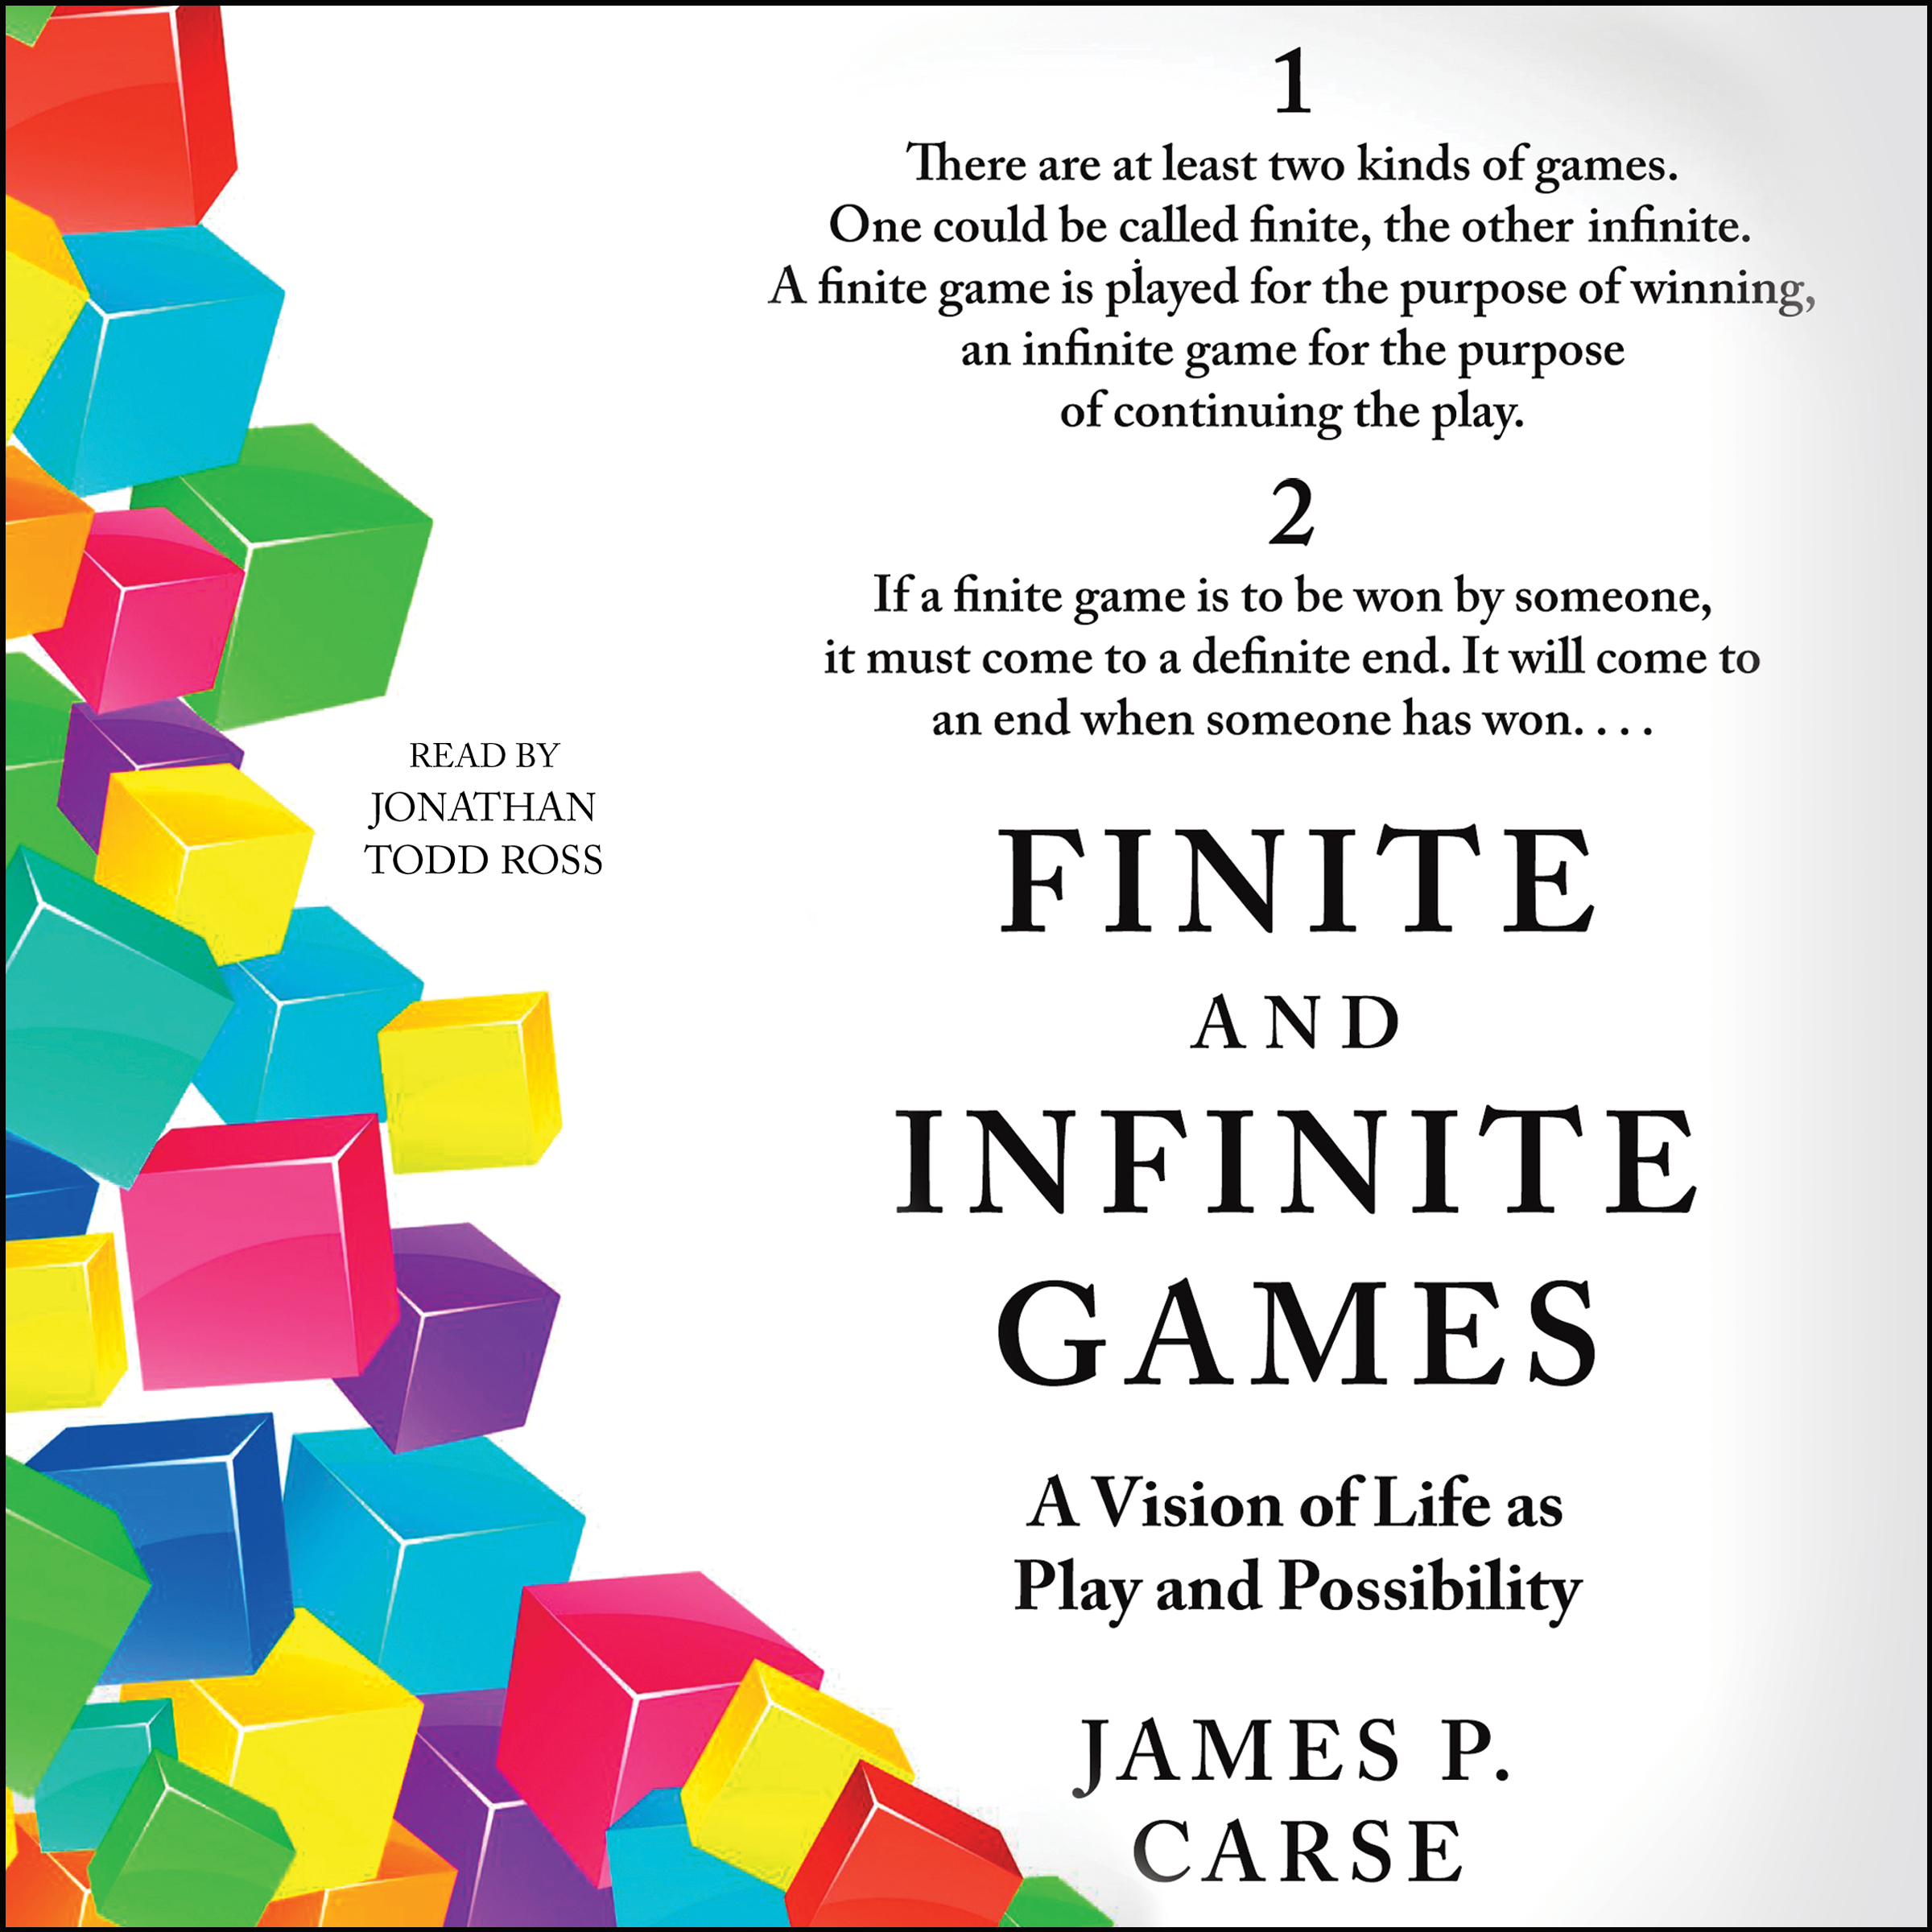 Finite and infinite games 9781508256809 hr